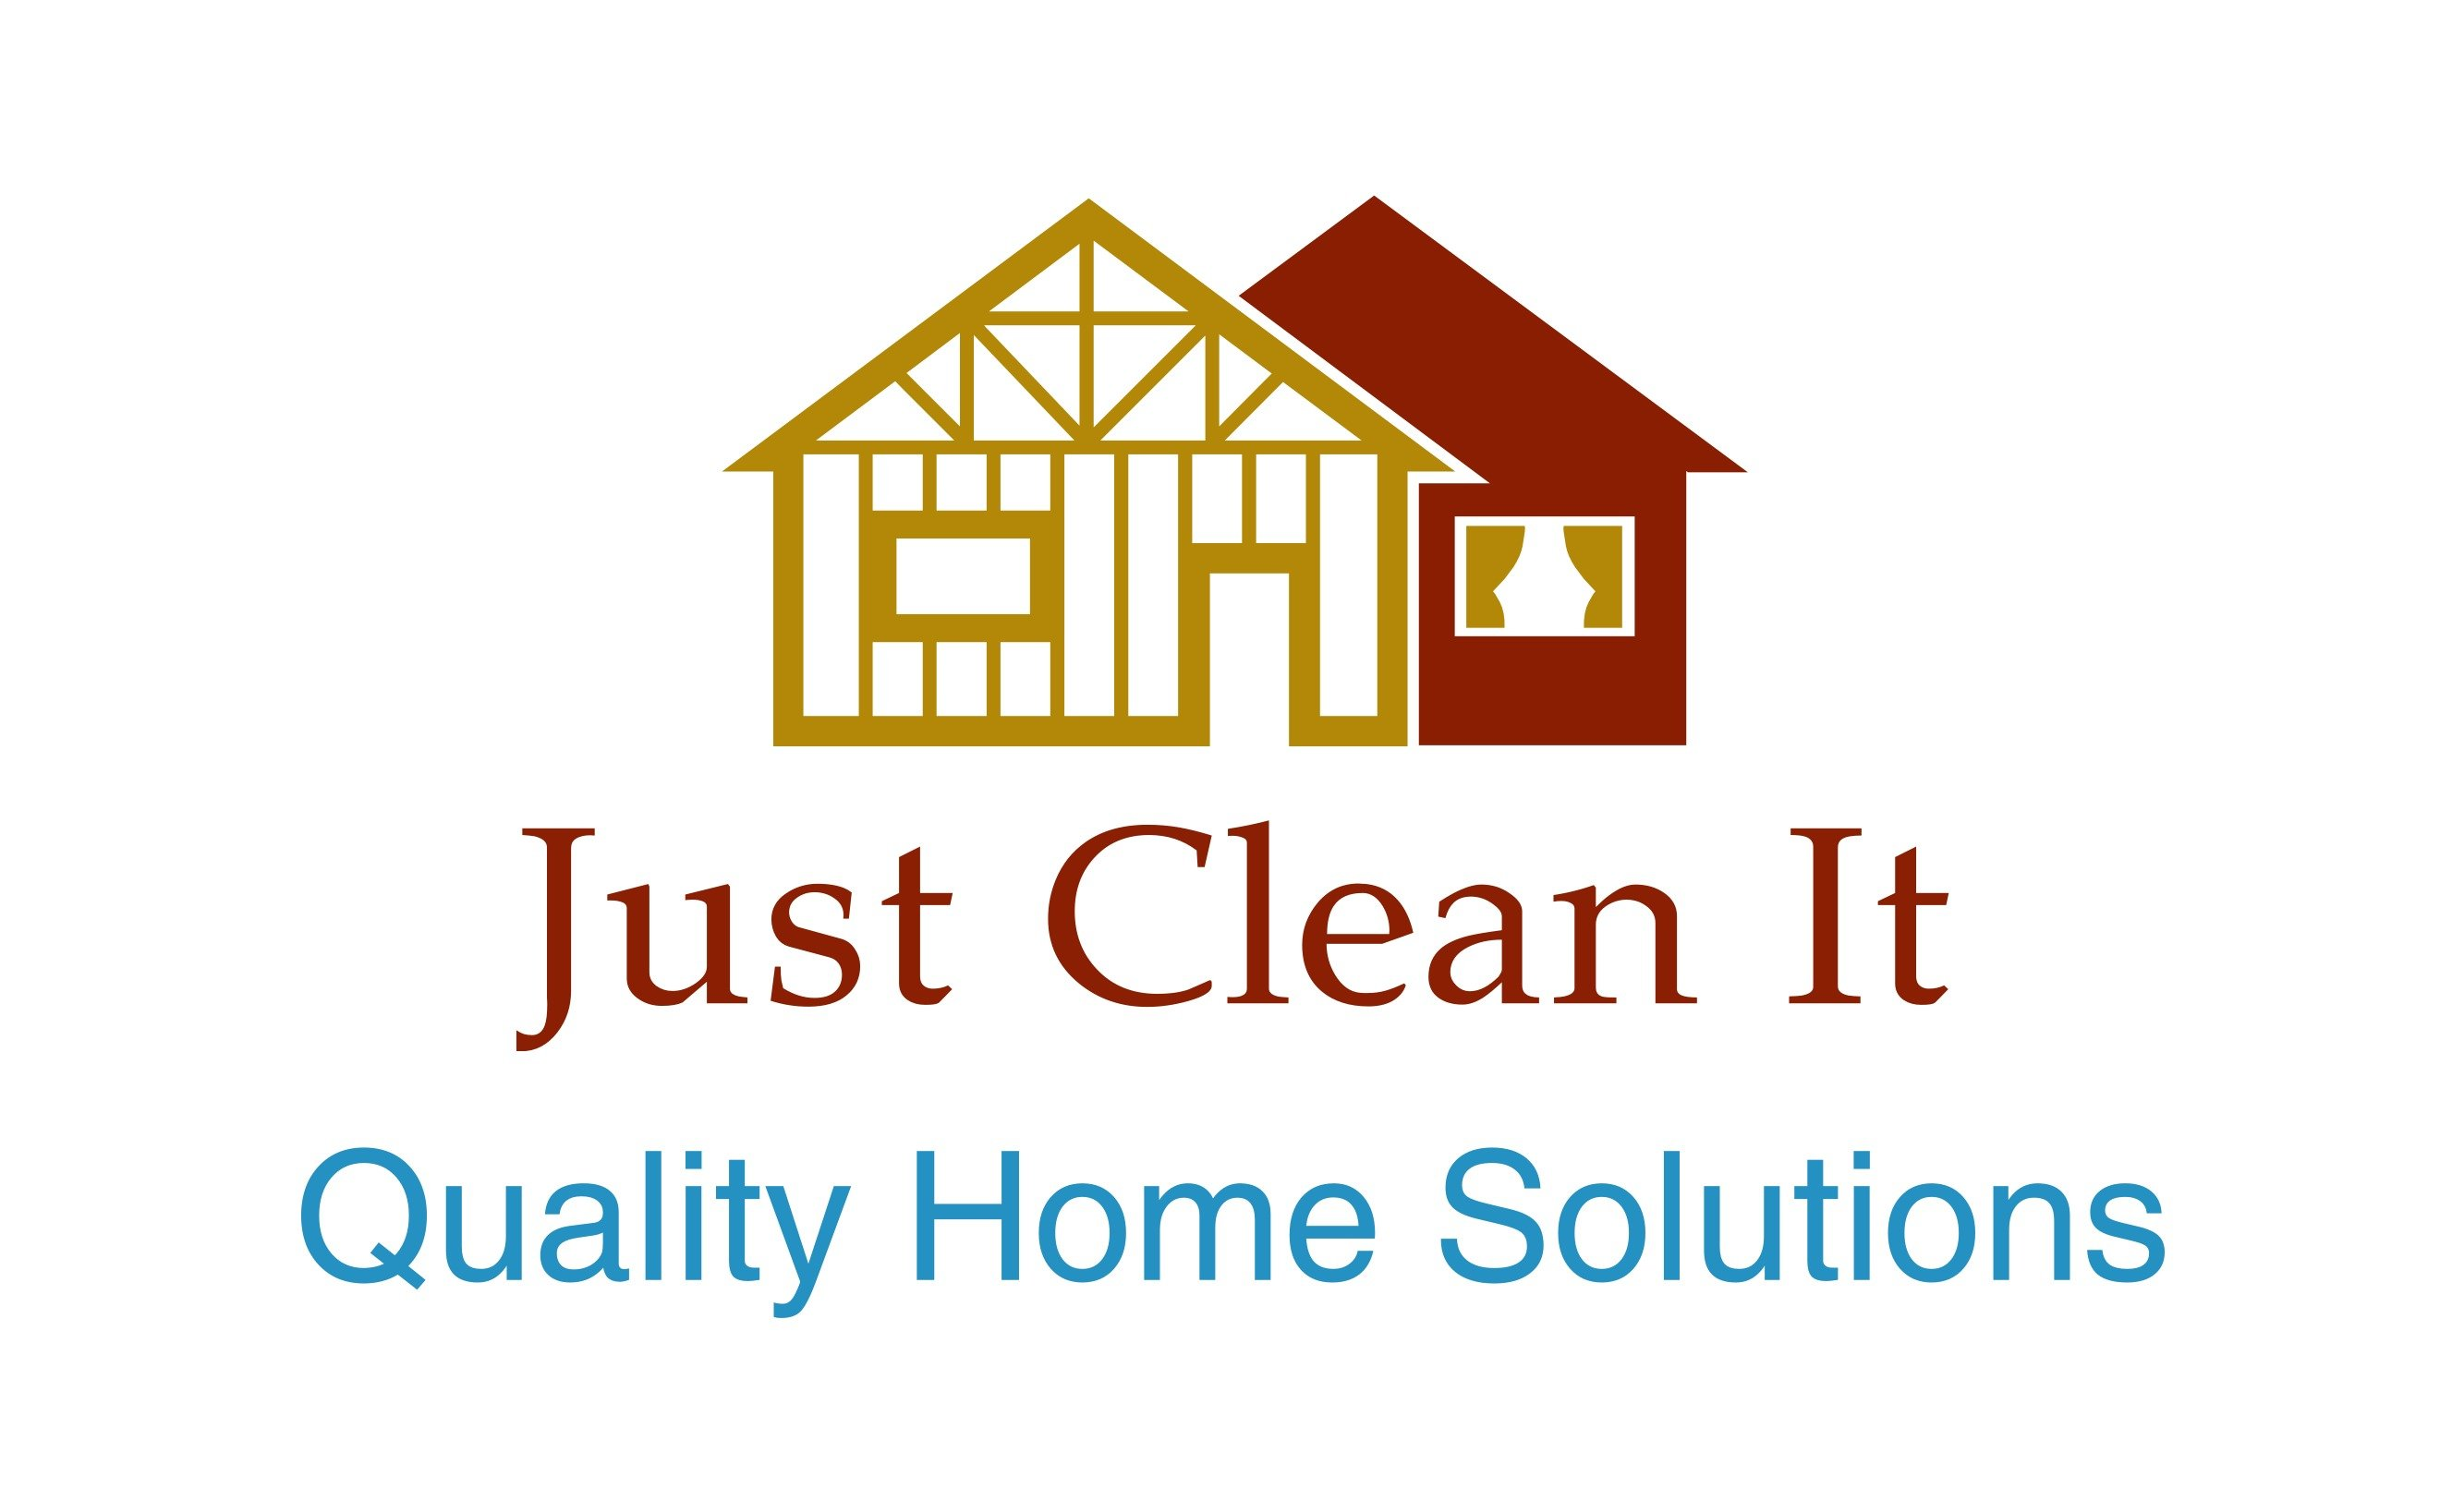 House, Condo Cleaning Services in Toronto, Post Renovation Cleaning